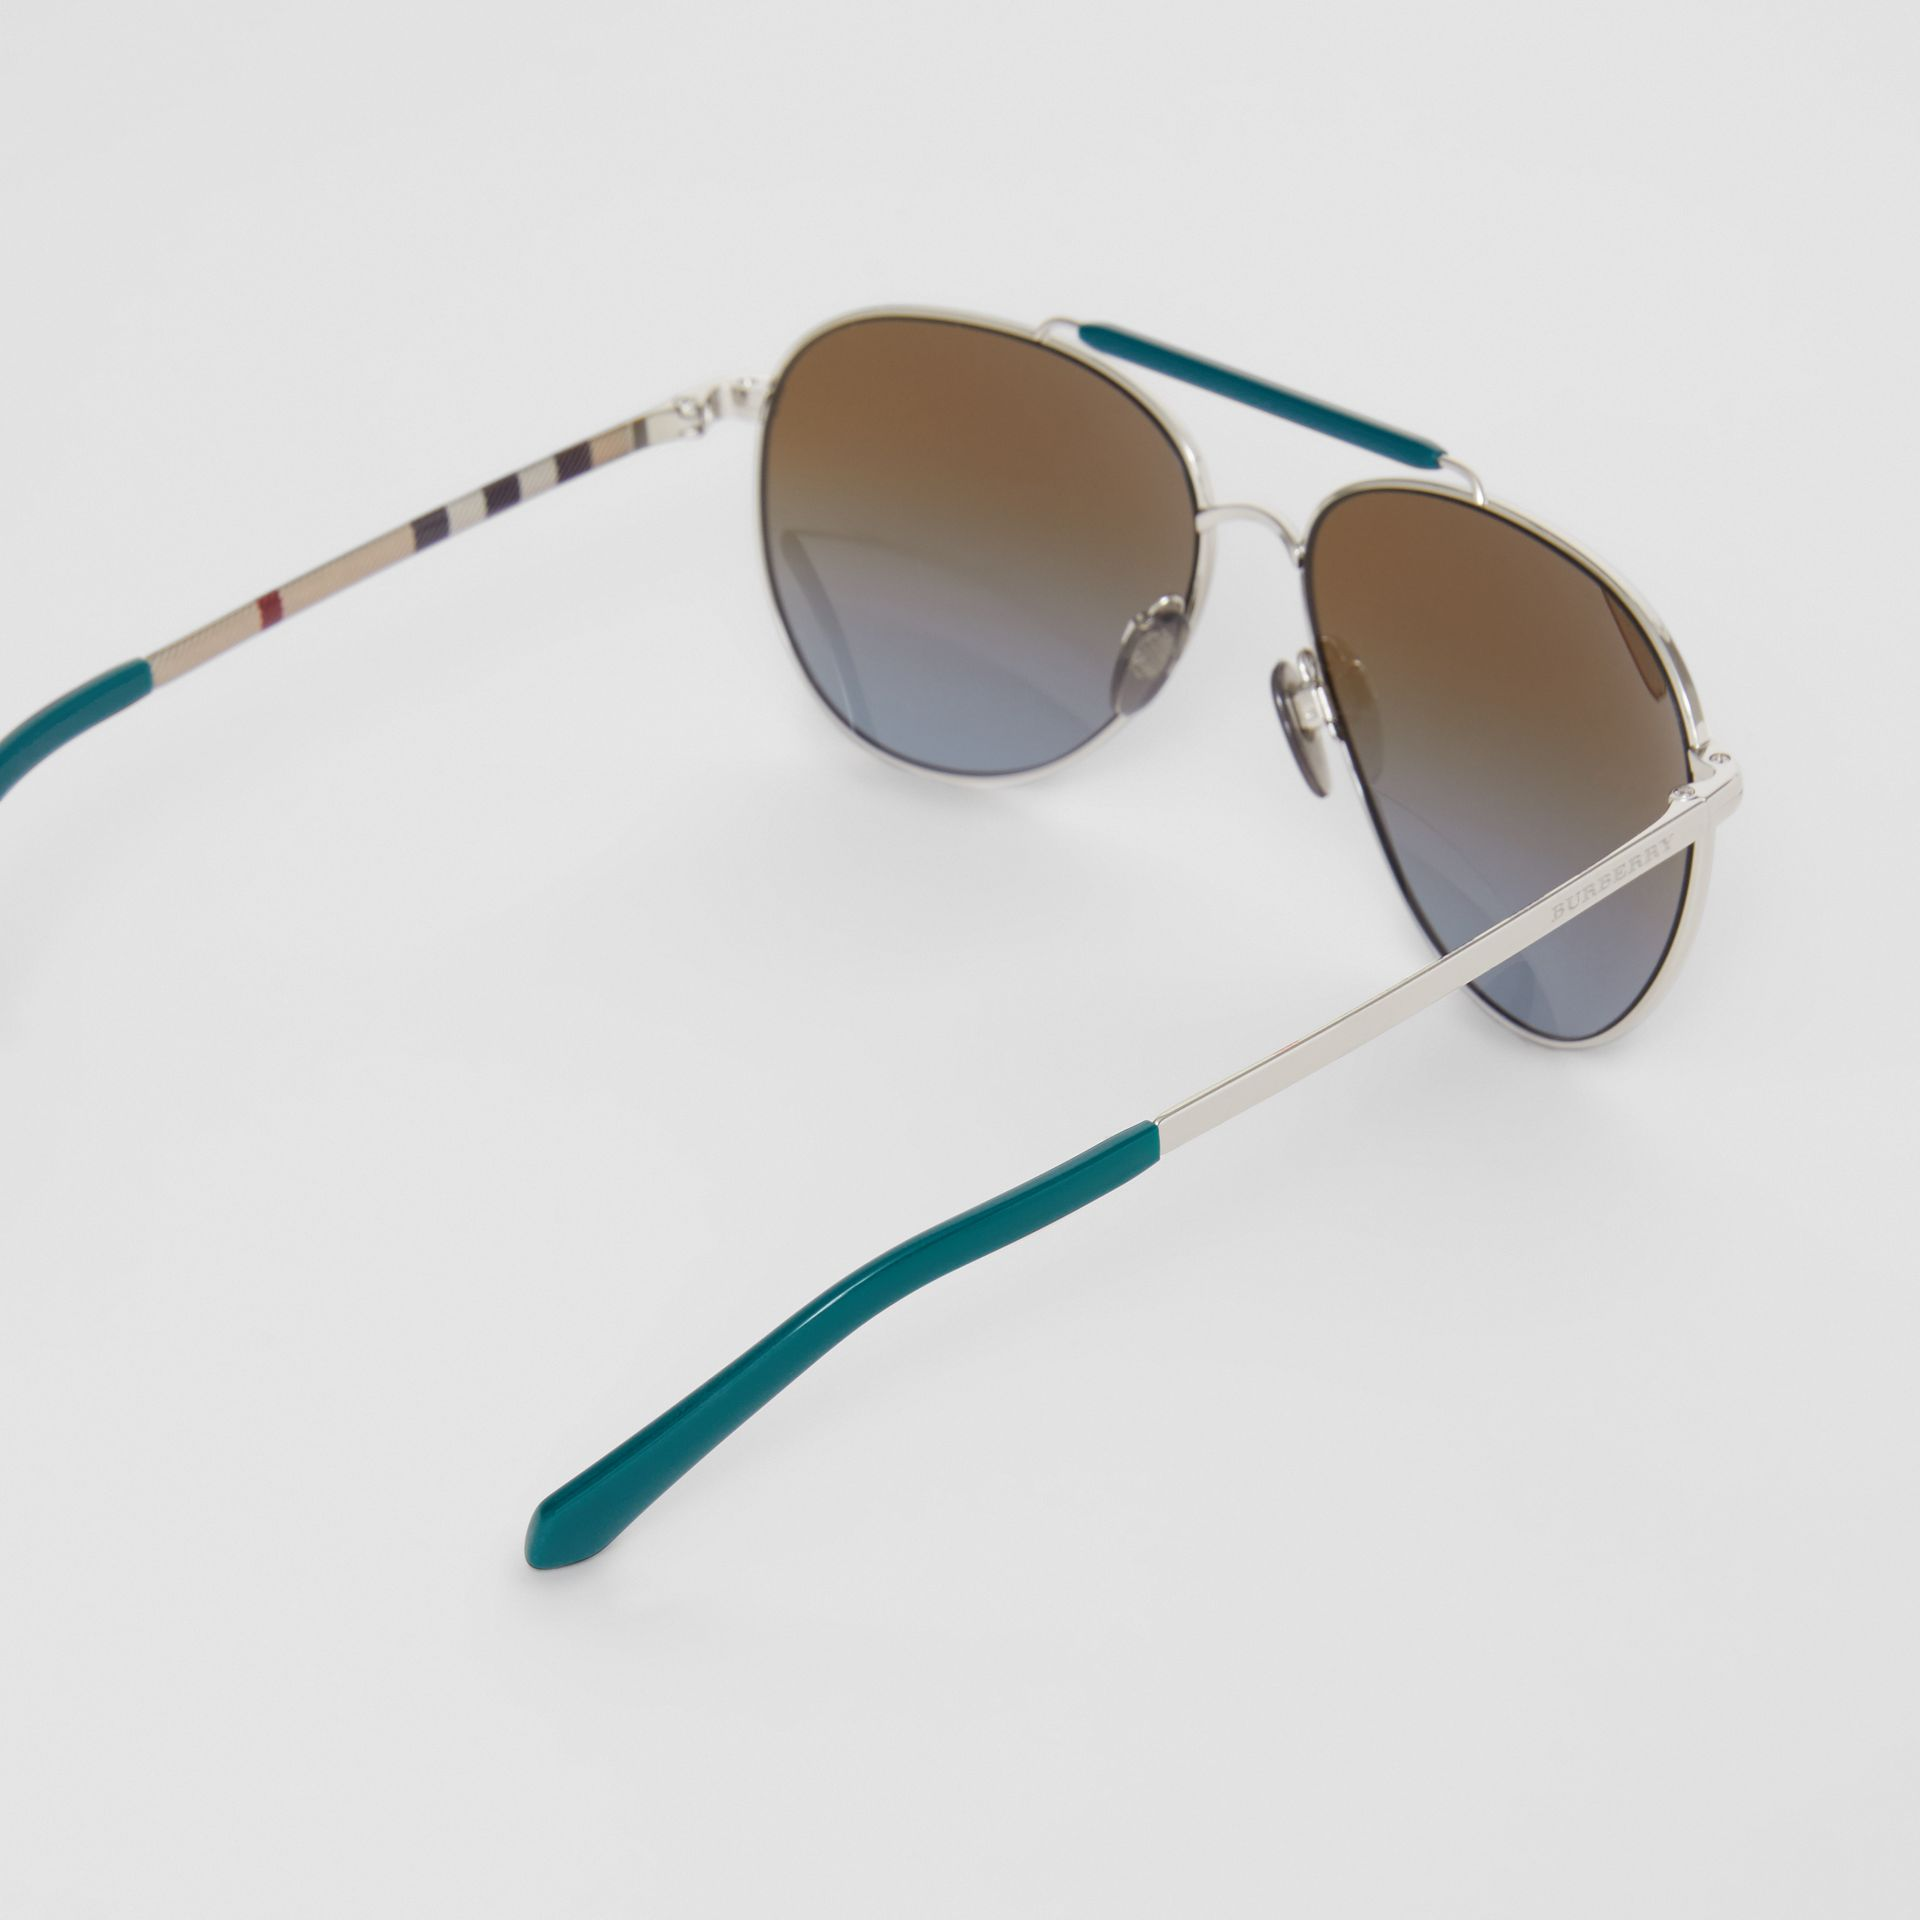 Top Bar Detail Pilot Sunglasses in Teal Blue - Men | Burberry - gallery image 4